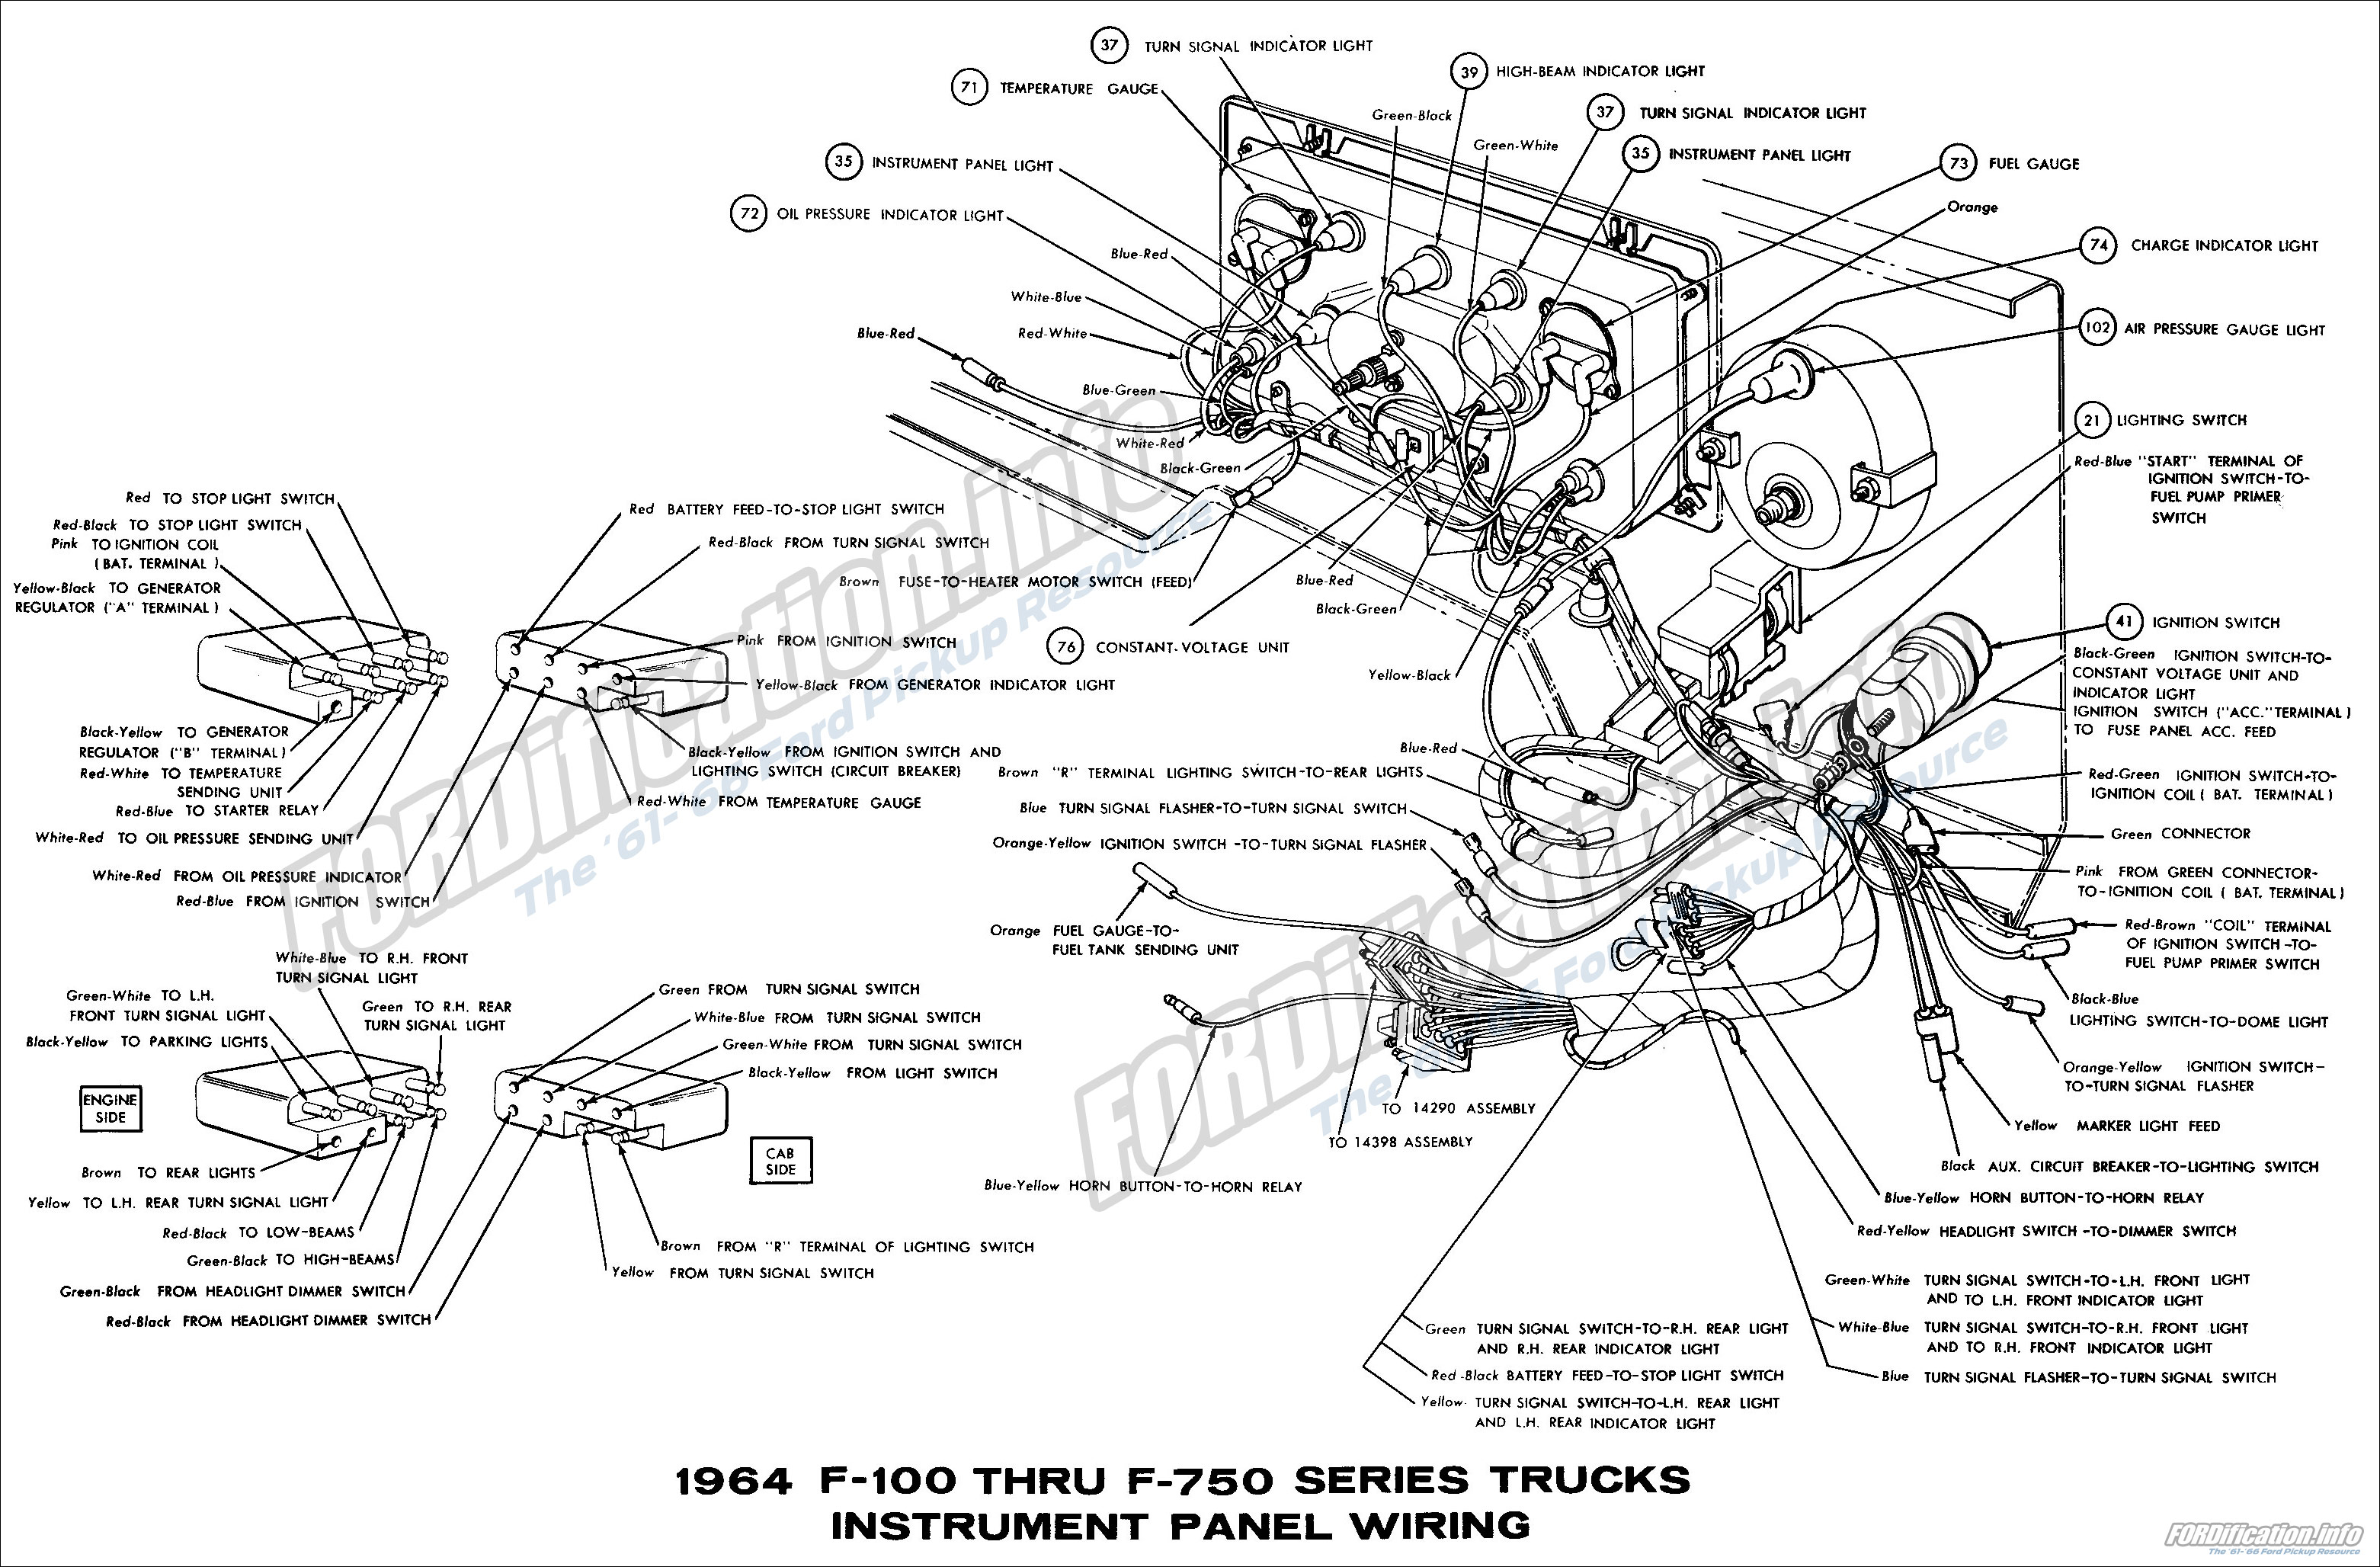 1964 ford truck wiring diagrams fordification info the 61 66 rh fordification info 1946 Ford Wiring Diagram 76 Ford Wiring Diagram